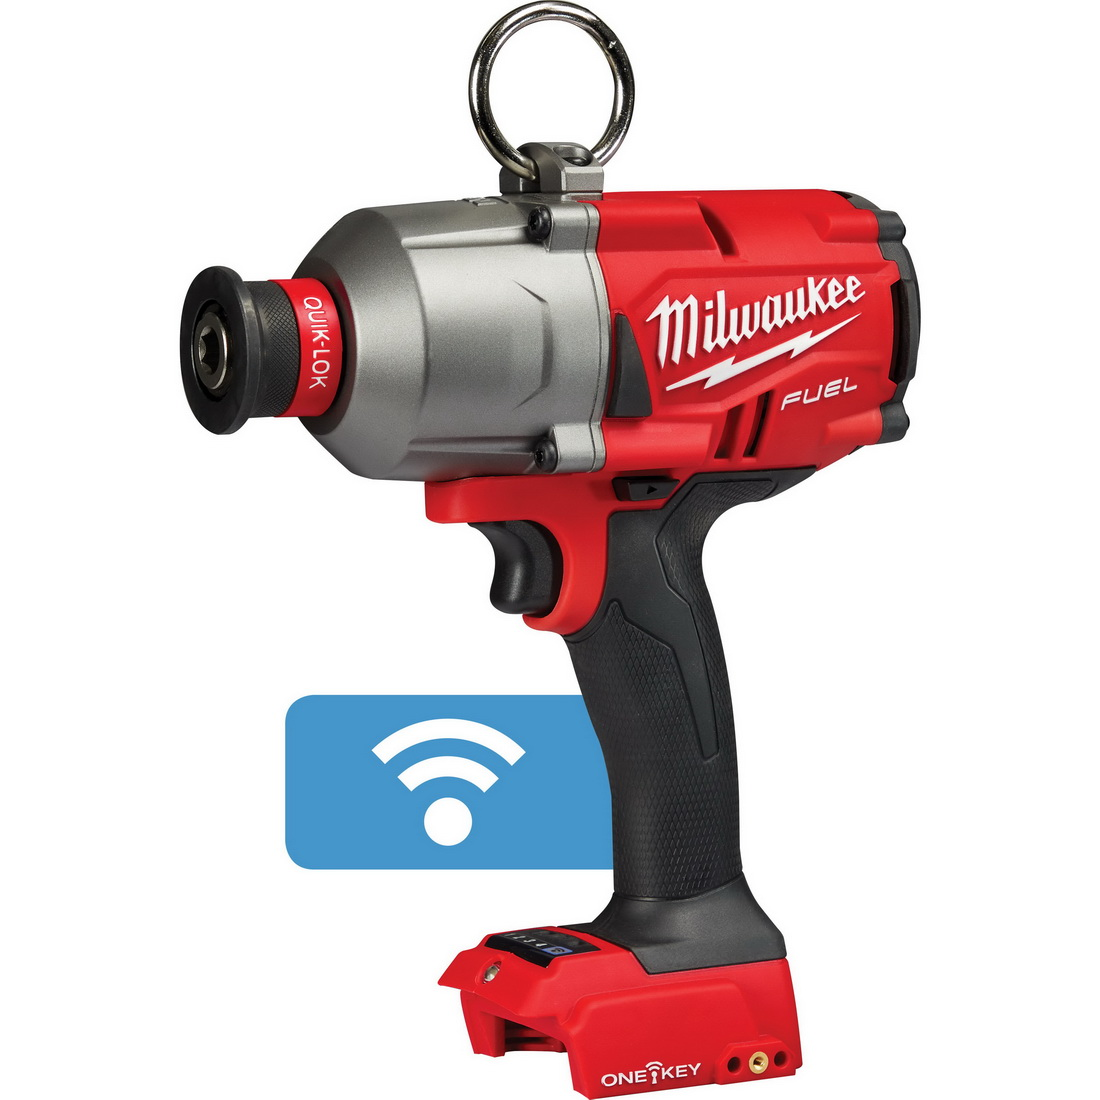 M18 FUEL Hex Utility High Torque Impact Drill (Tool Only)